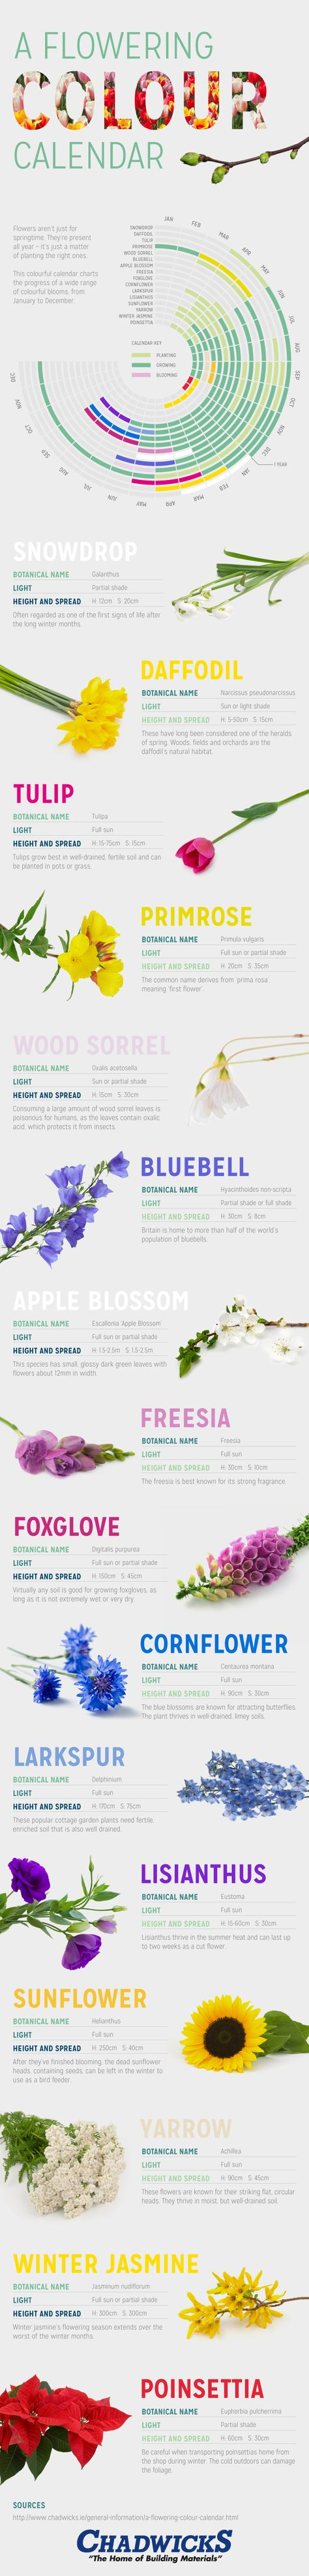 A Flowering Colour Calendar #infographic #Flowers #Gardening